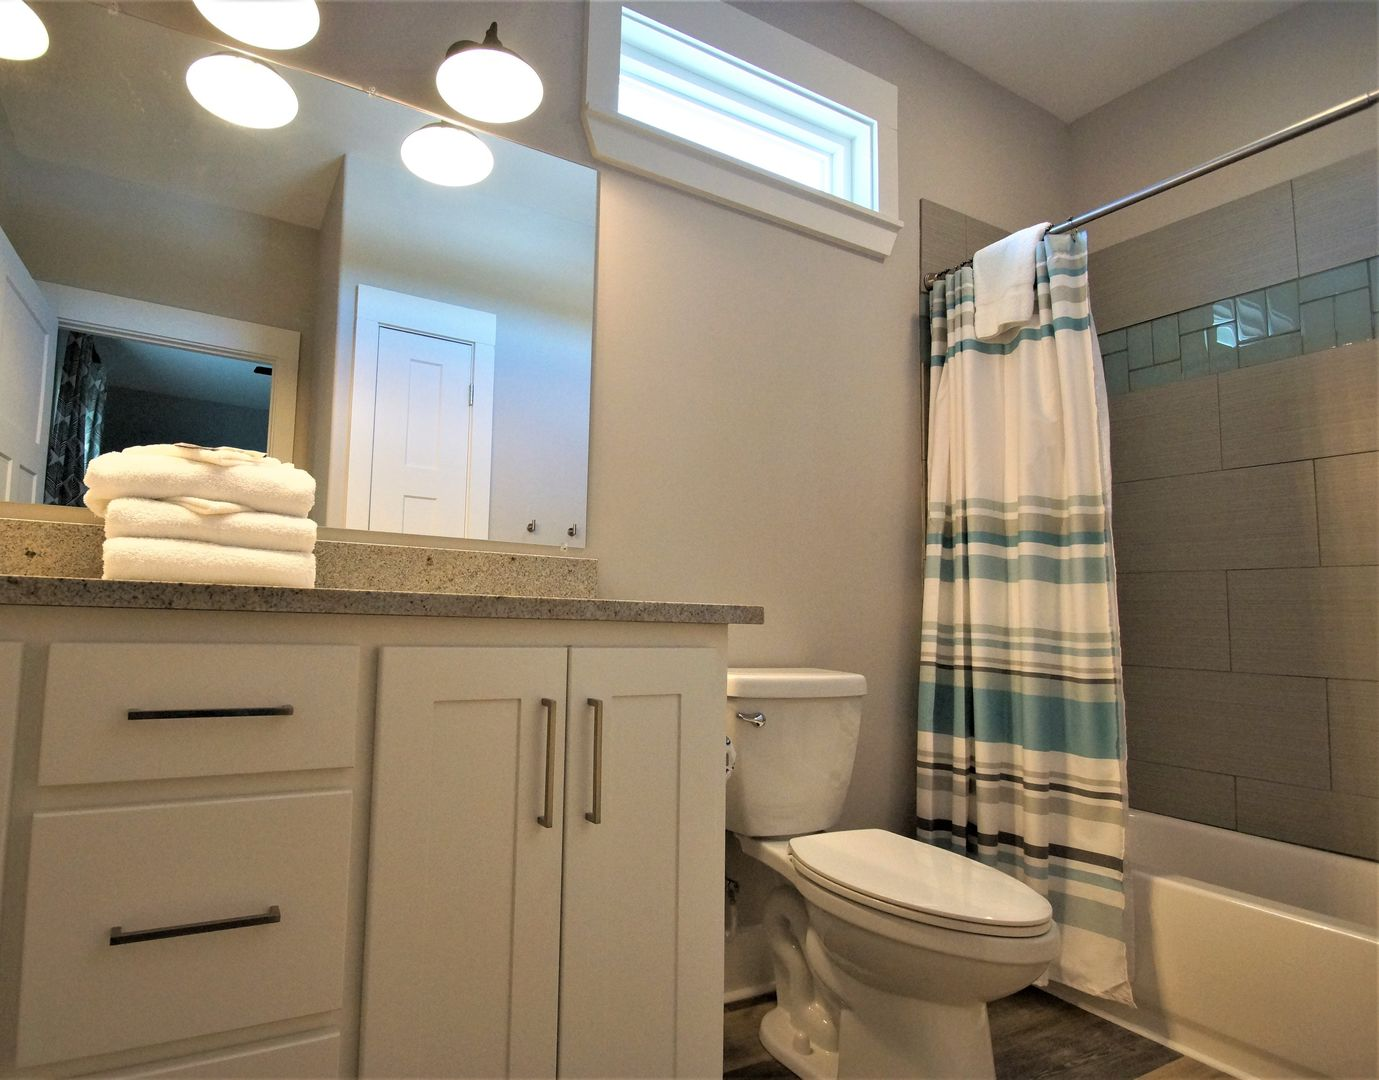 Bathroom attached to bedroom #4.